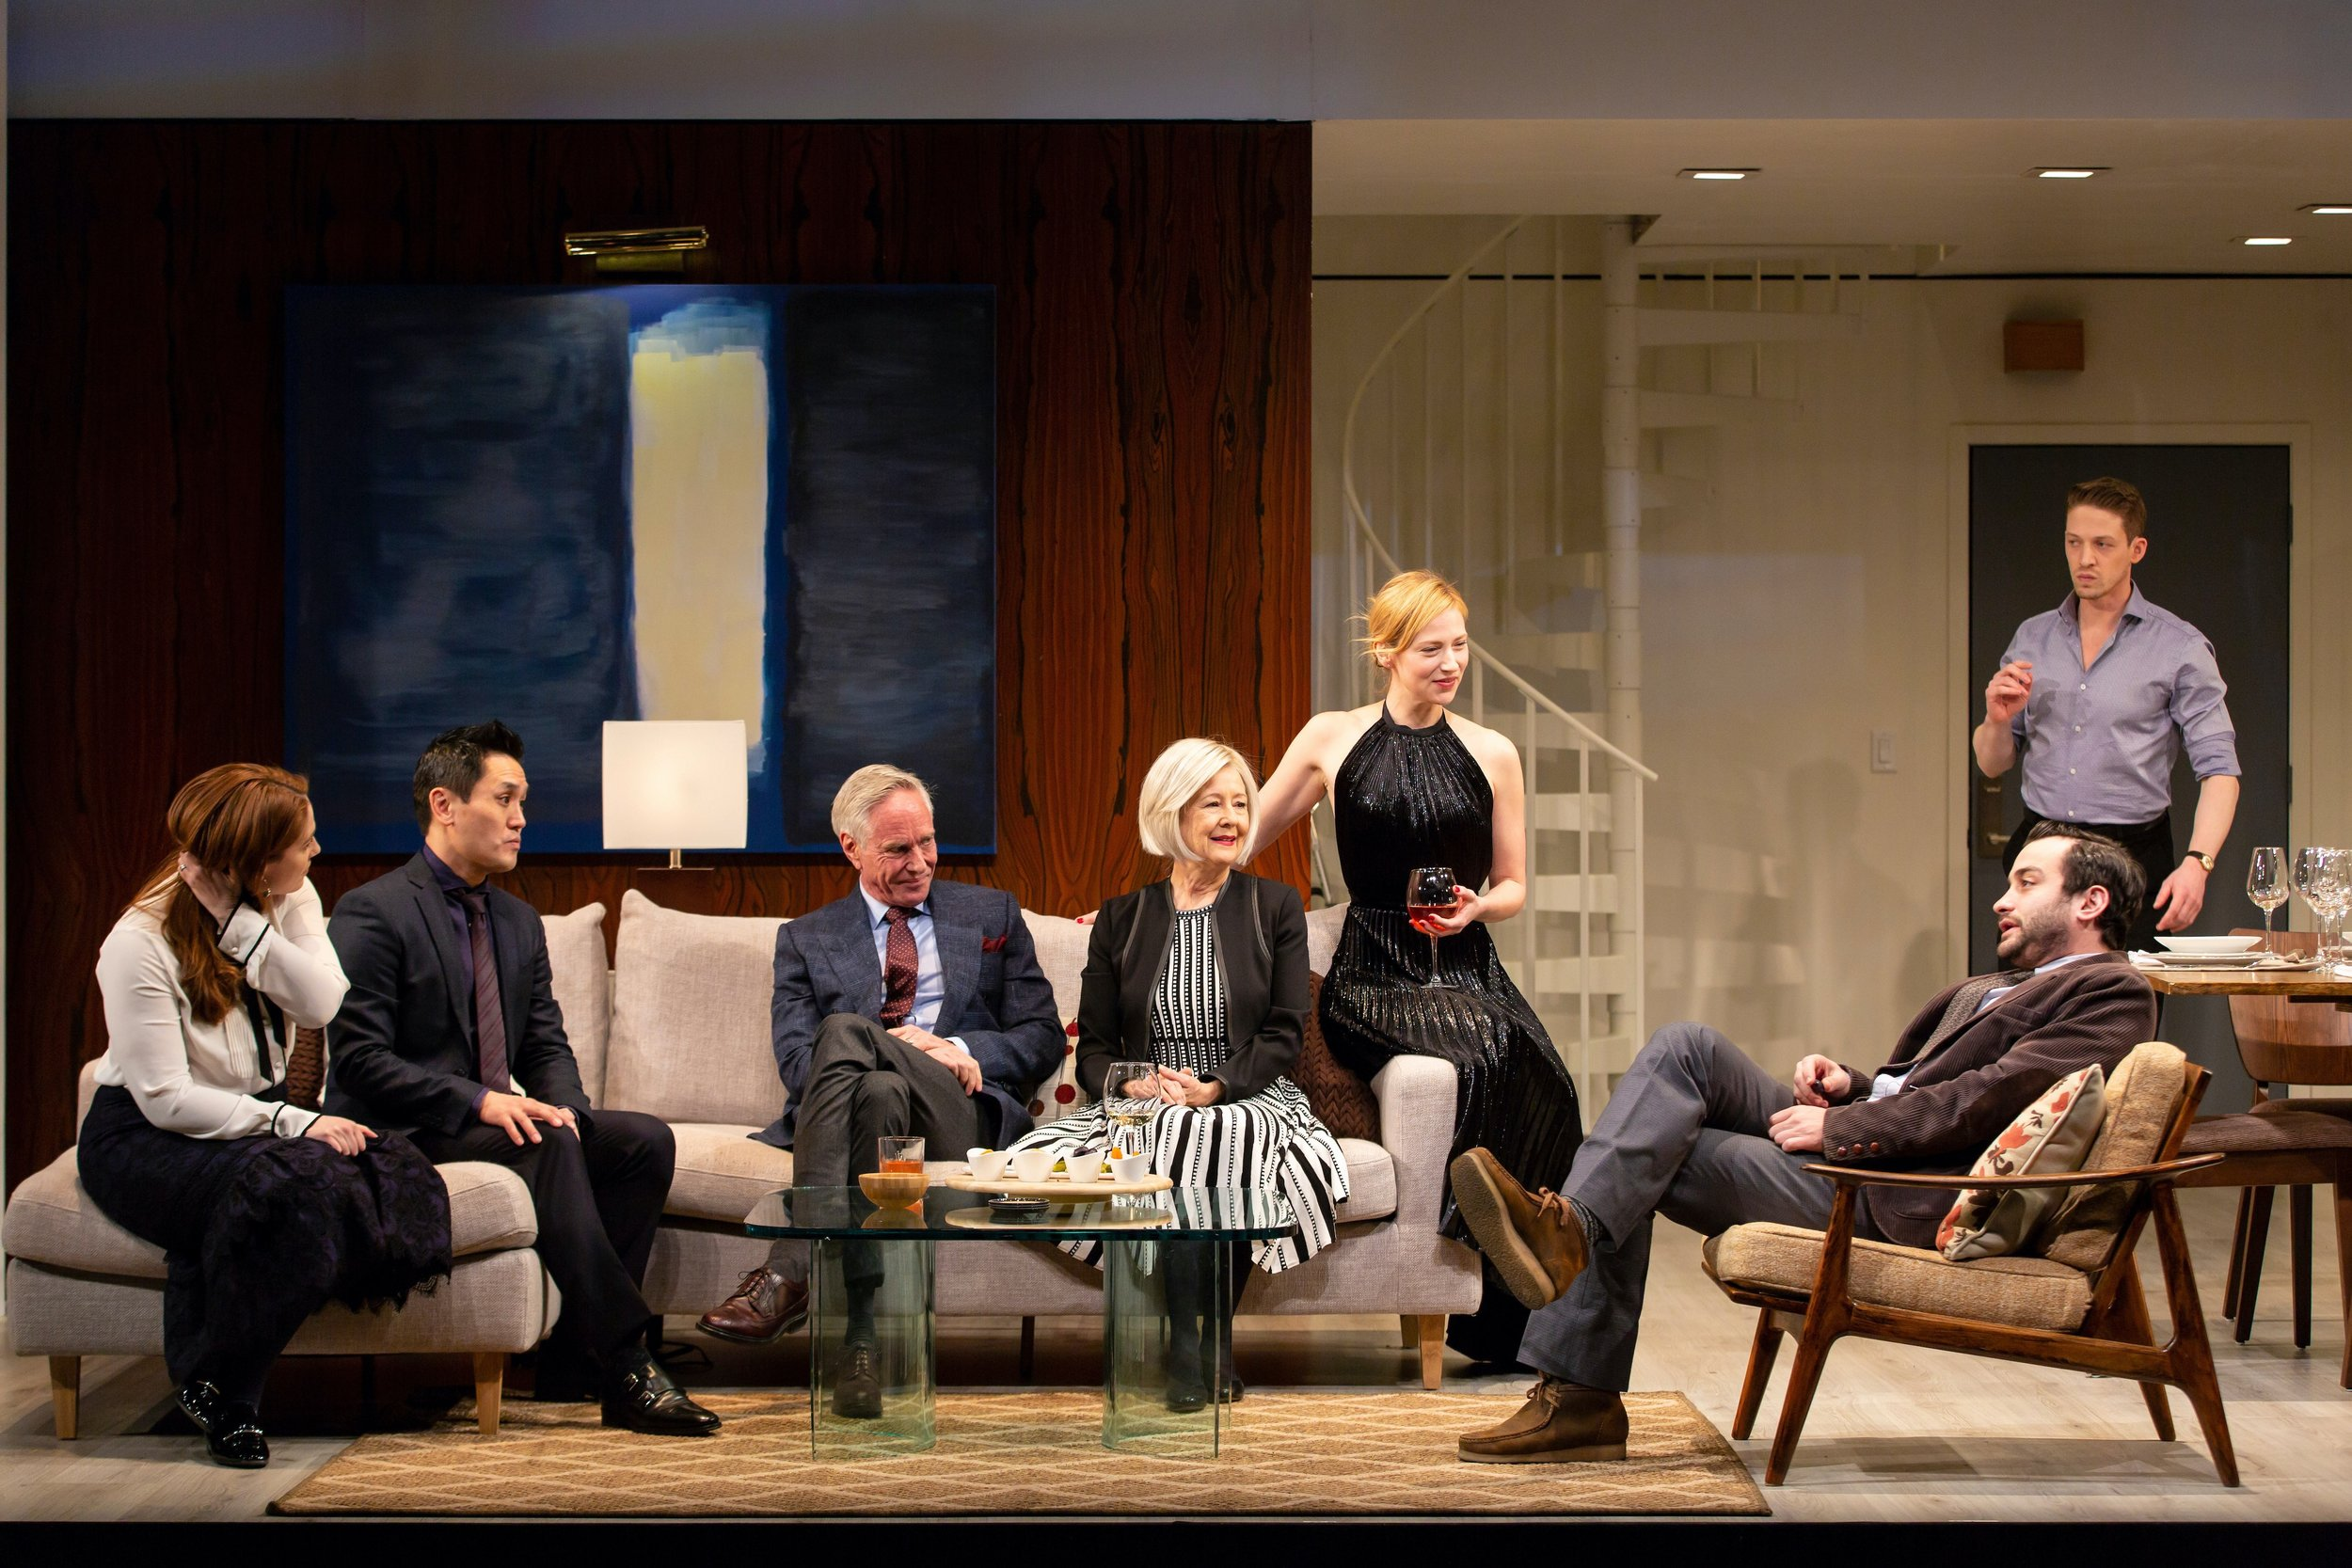 Haley (Anne Troup), Kai (Brian Lee Huynh), Conrad (Richard Bekins), Gail (Mia Dillon), Katherine (Beth Riesgraf), Alan (Teddy Bergman), Josh (Zach Appelman) in the world premiere of The Engagement Party at Hartford Stage (photos by T. Charles Erickson)